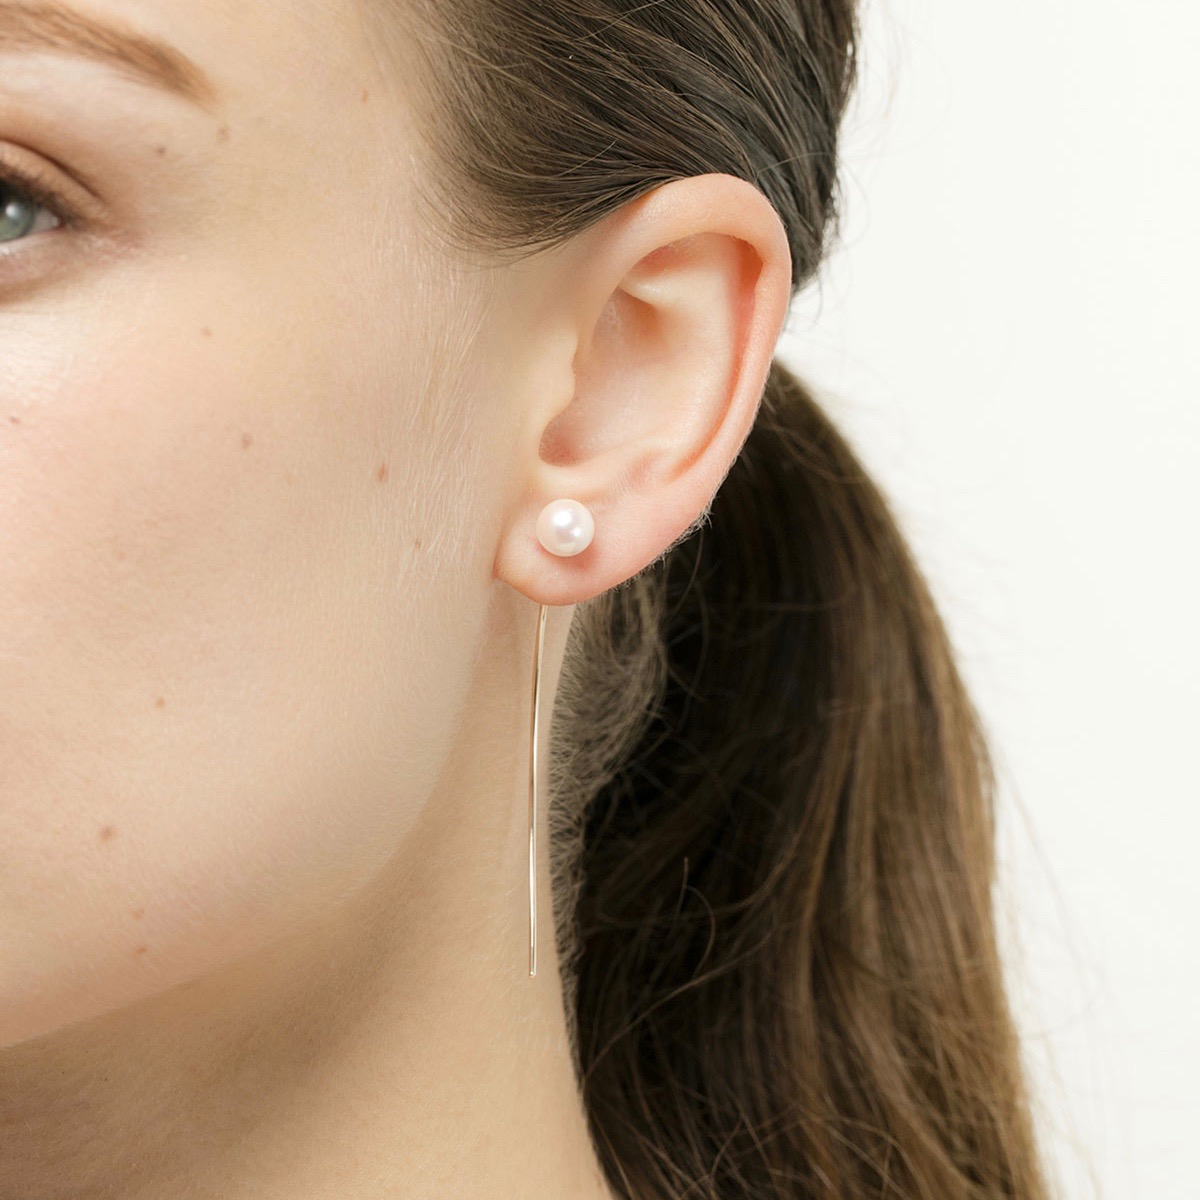 Arrow Earring Collection with 'L Size' Akoya Pearl PE10KPE イヤリング ピアス パール アロー アコヤパール 片耳